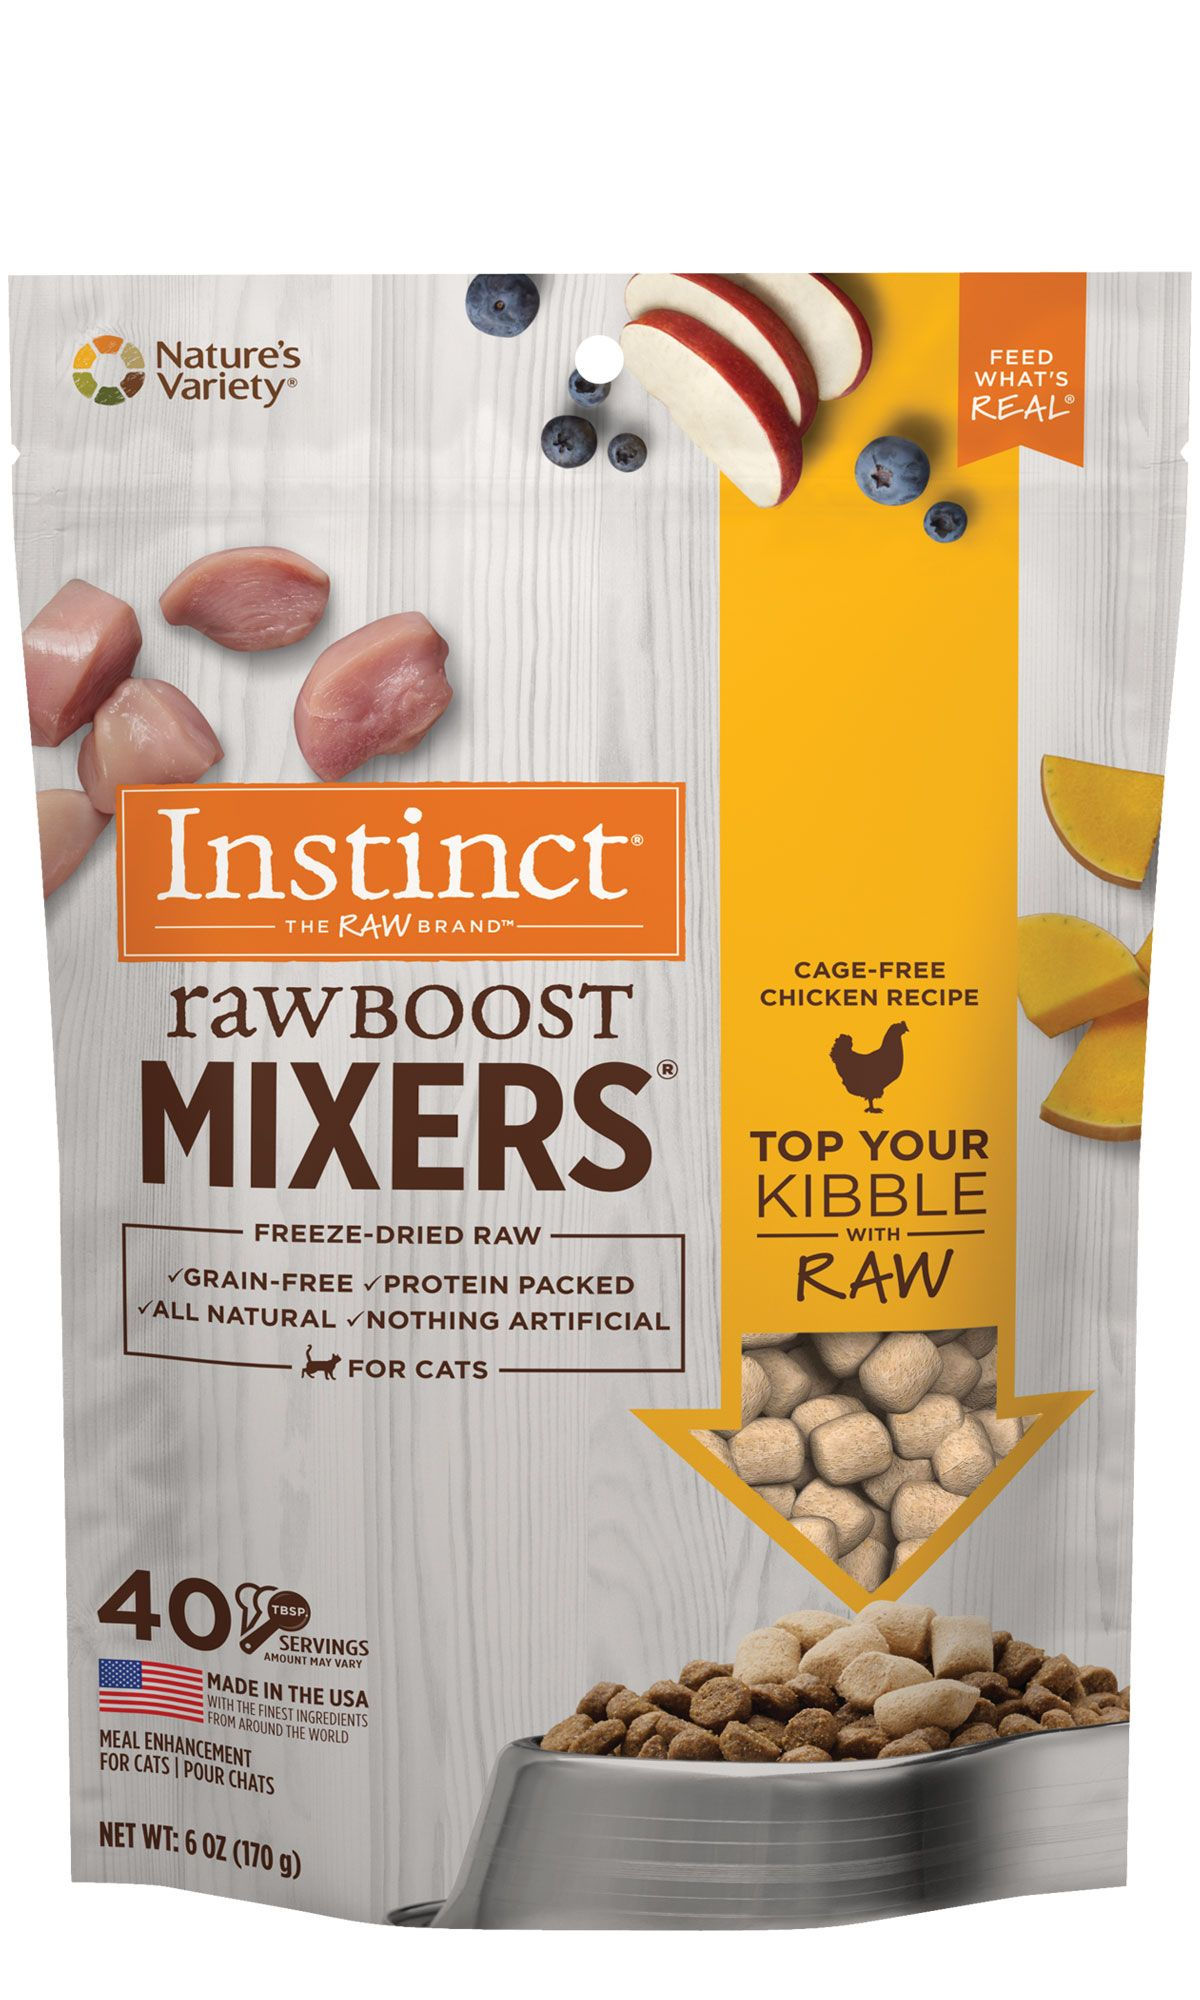 Raw Boost Mixers Cat Cage-Free Chicken